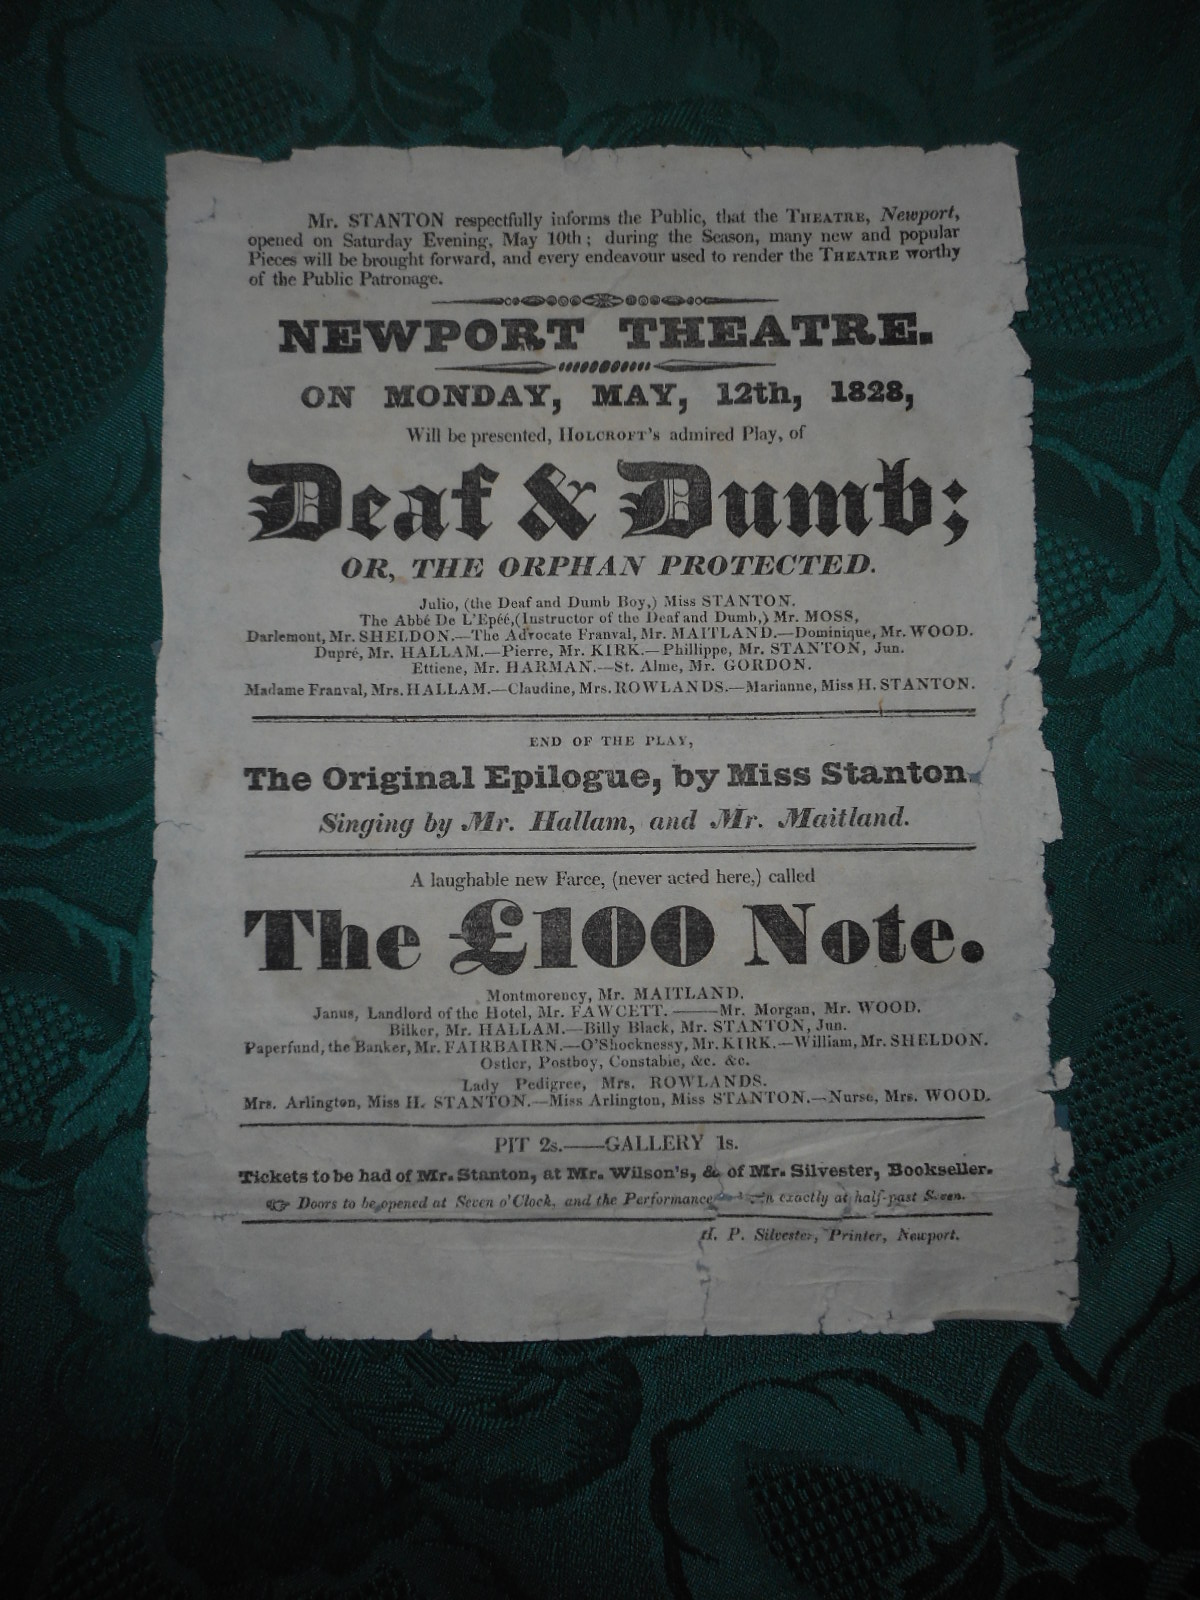 Image for NEWPORT THEATRE. Deaf & Dumb; Or. the Orphan Protected... an ORIGINAL THEATRE Poster/ Theatre Bill for Monday, May, 12th, 1828... Will be Presented... 1820s Playbill / Broadside Poster